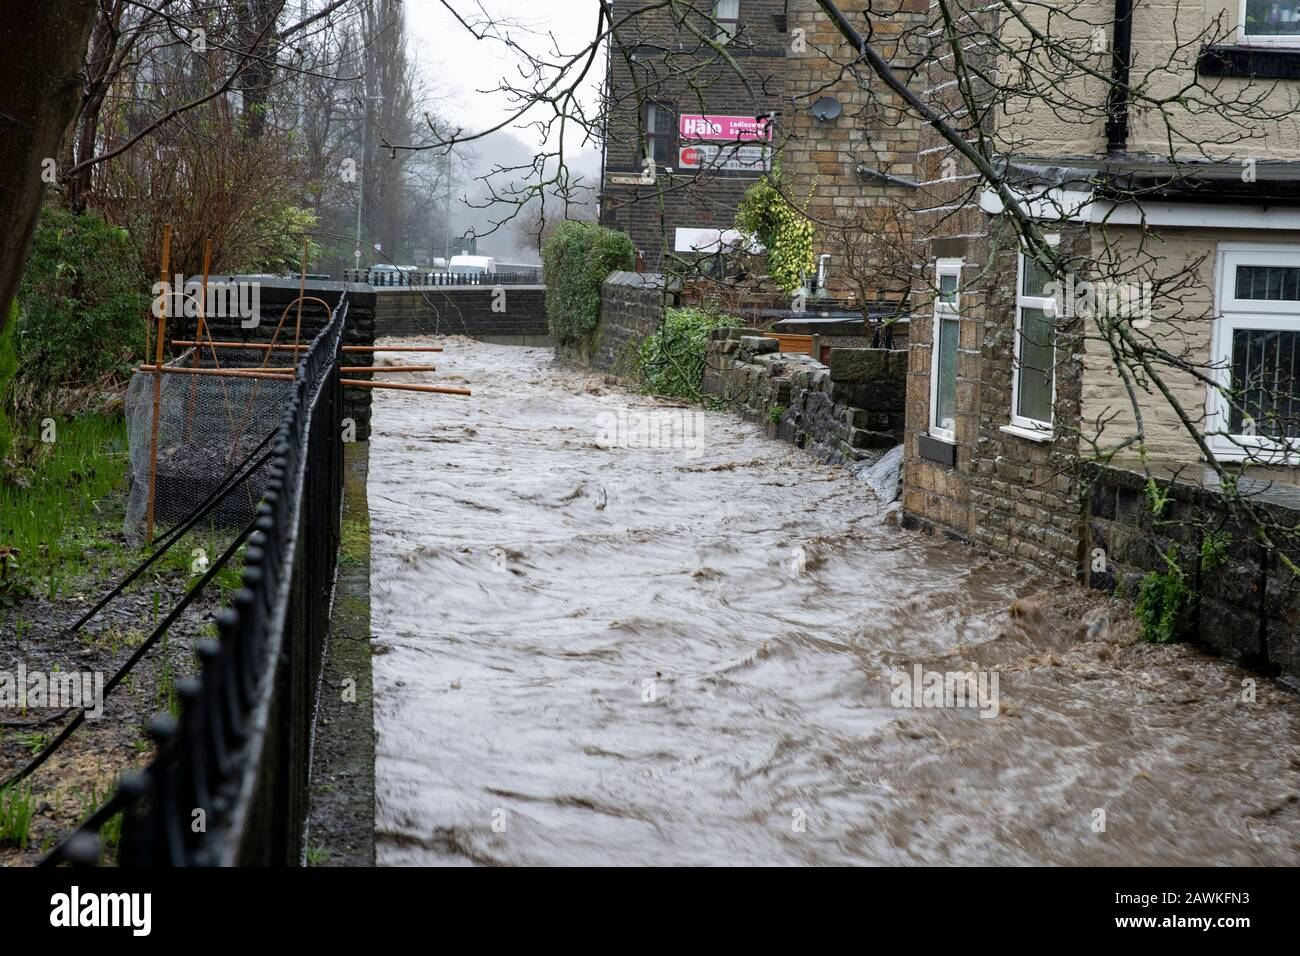 The River Calder almost breaches its banks in Todmorden town centre, West Yorkshire, following high rainfall associated with Storm Ciara. © Craig Redm Stock Photo